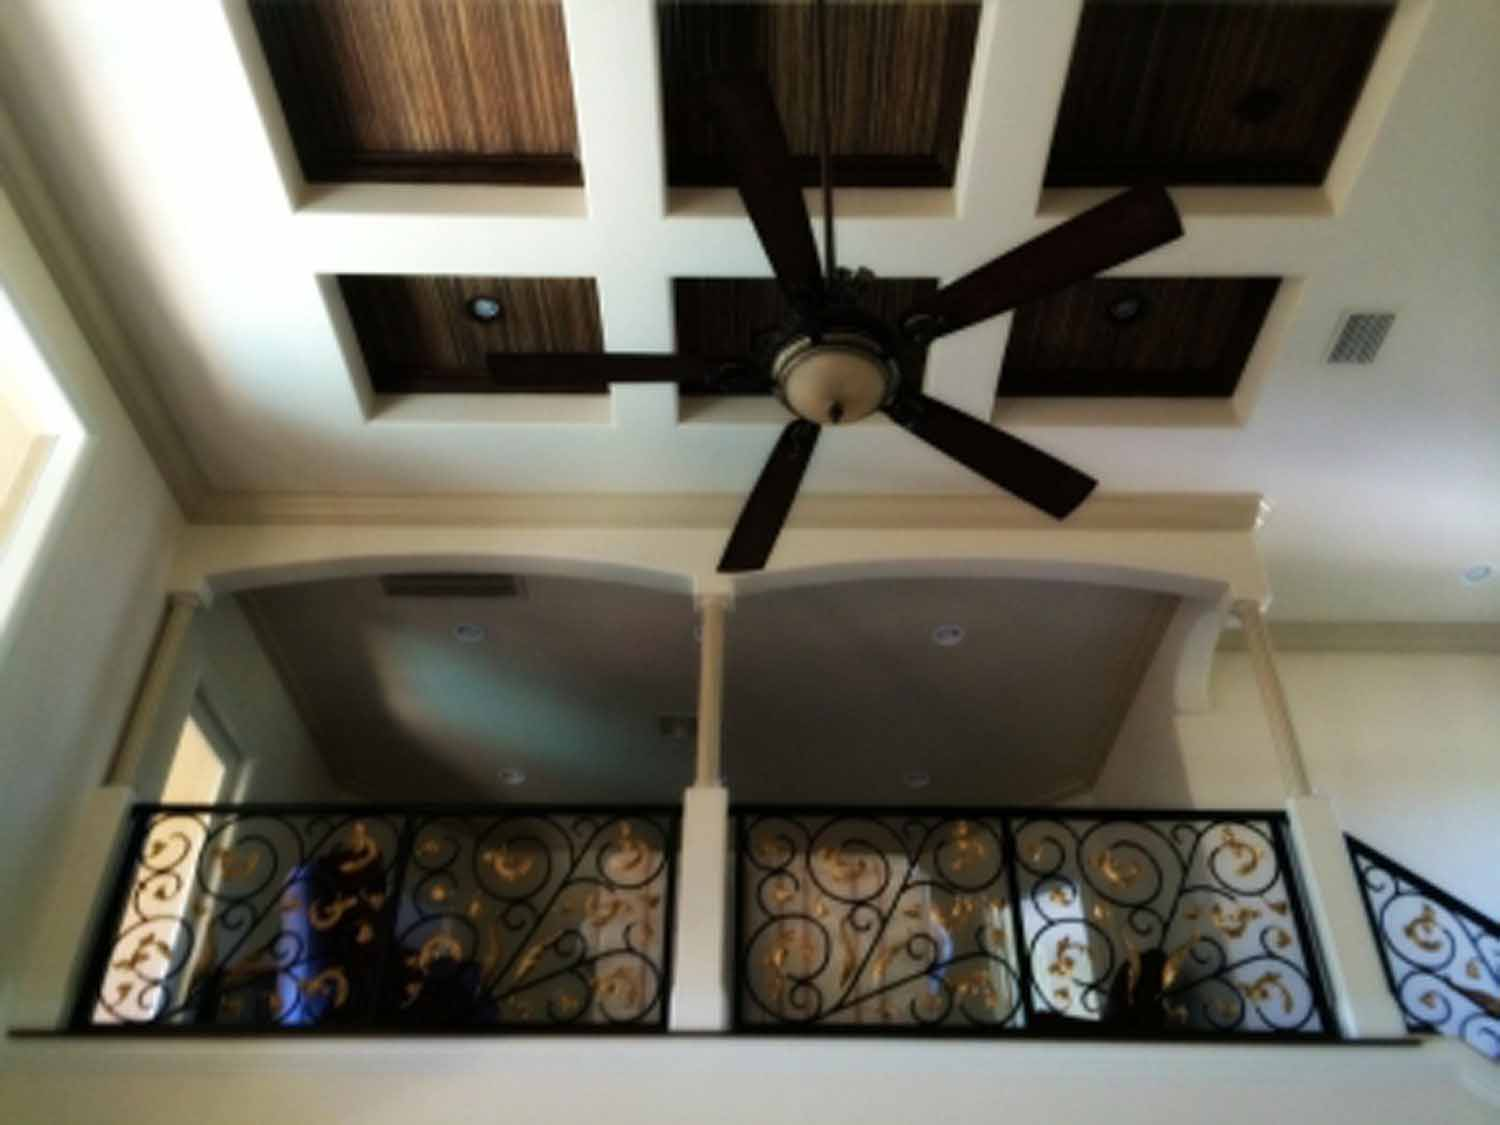 second floor with ceiling fan